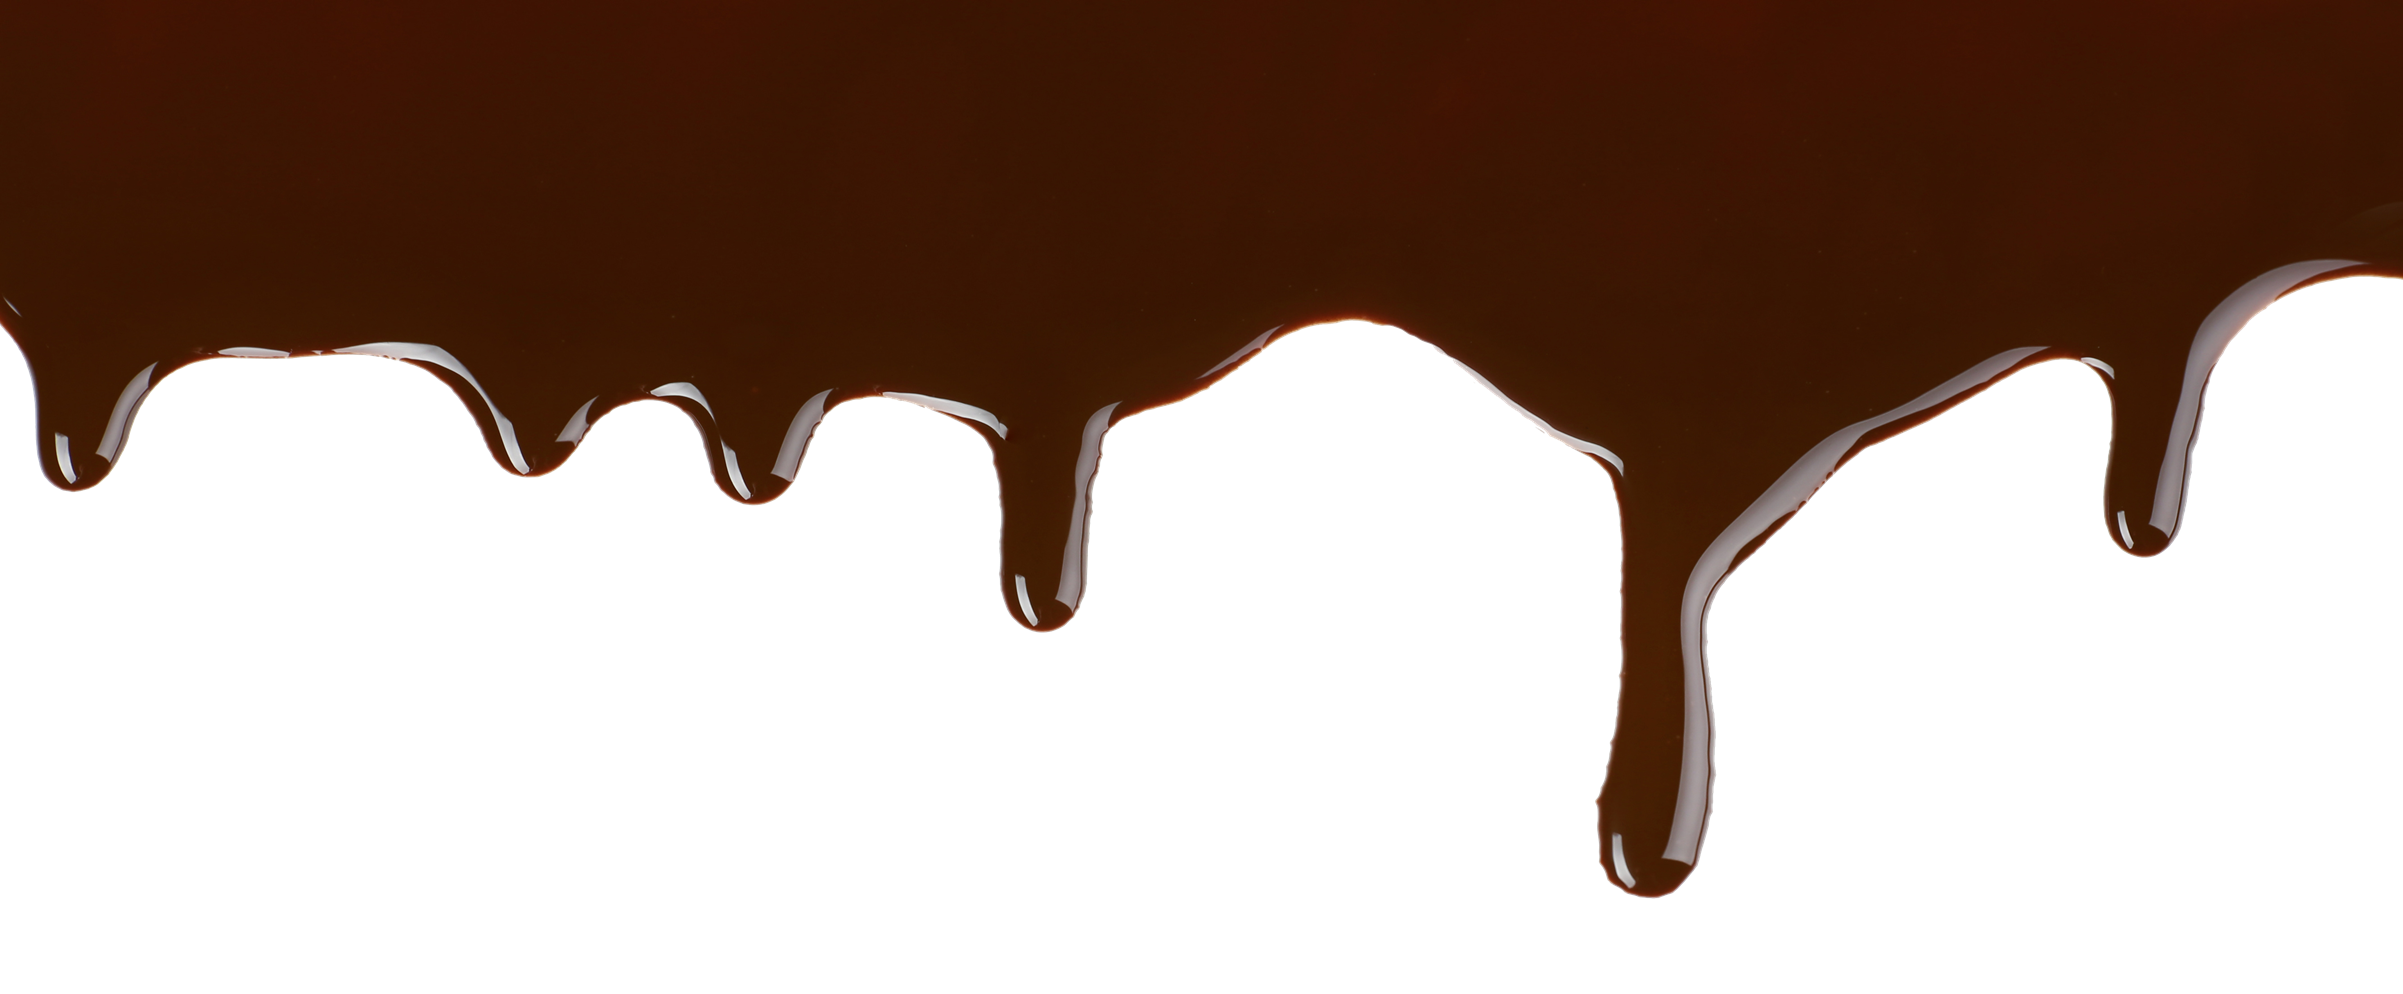 Melted Chocolate Image PNG Image